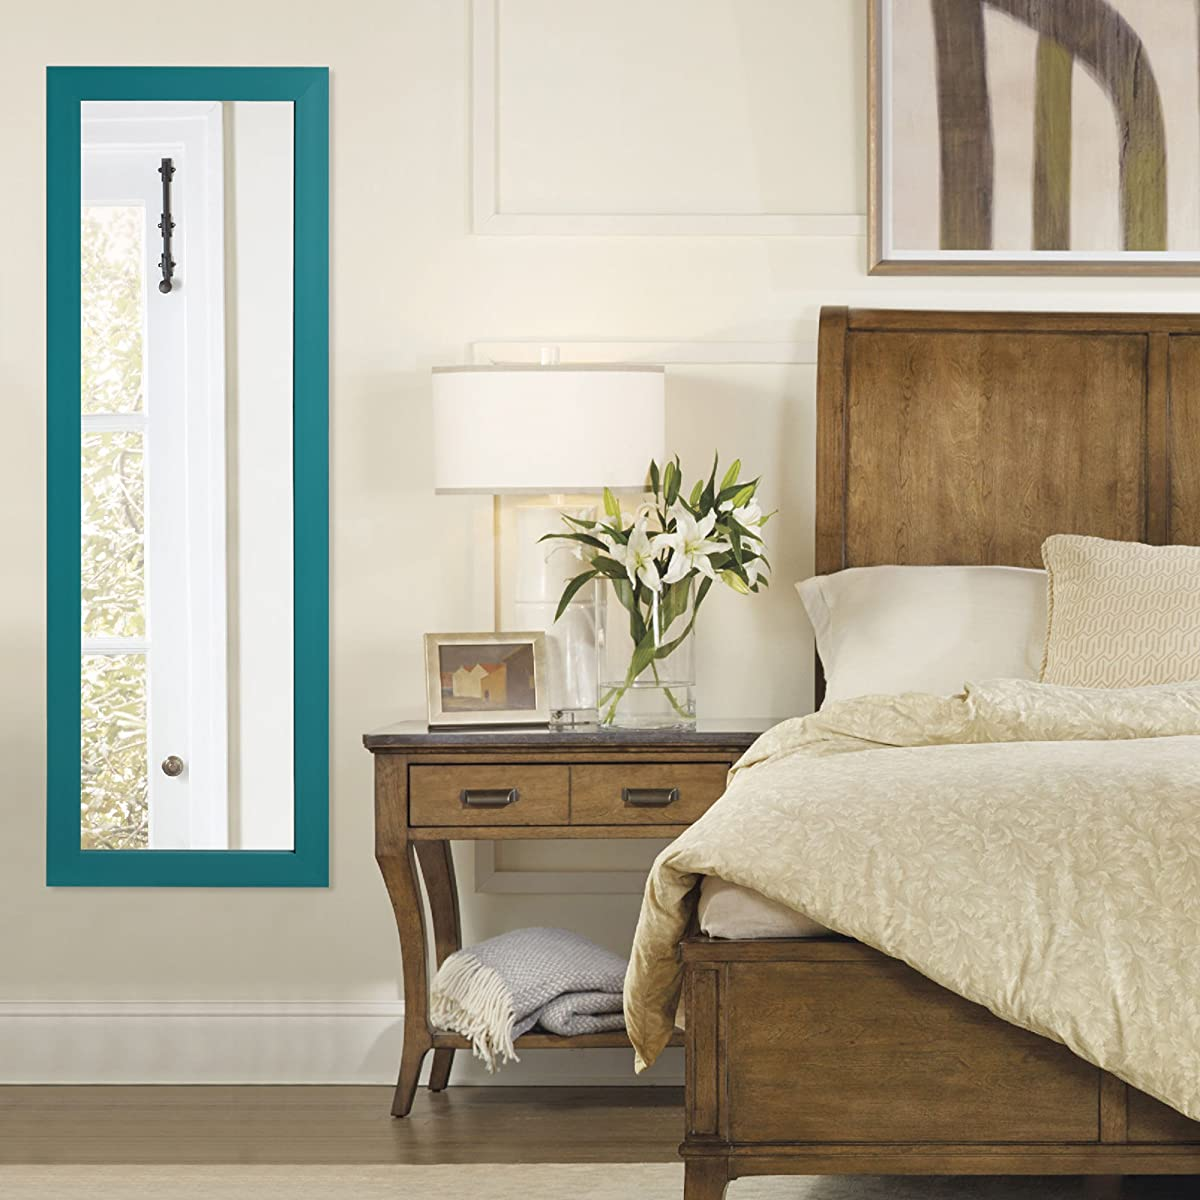 Inspired Home Julie Full Length Over-the-Door/Wall Mounted Jewelry Armoire Mirror Makeup Storage Organizer Vanity, Turquoise